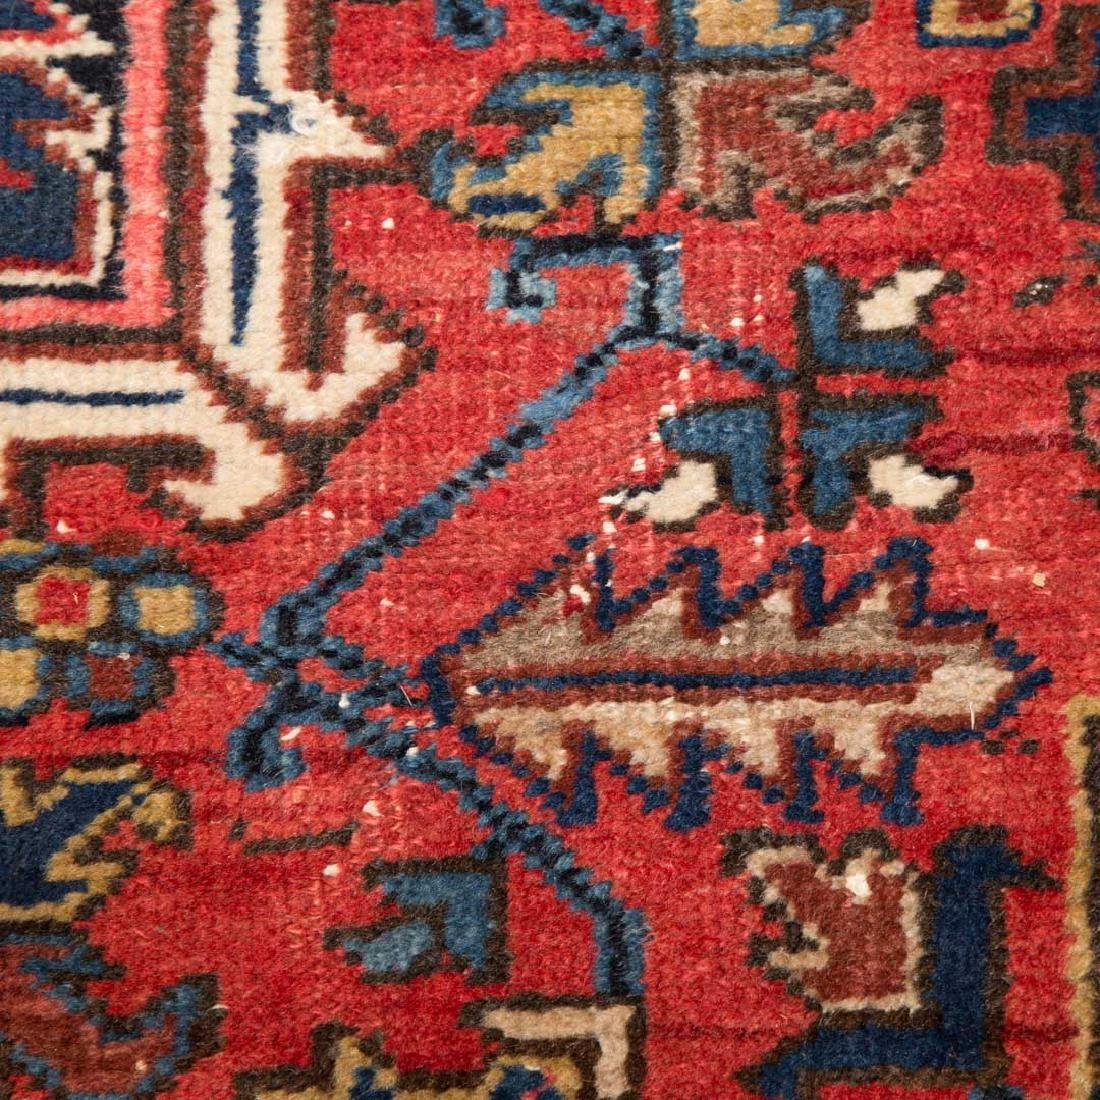 Persian Herez rug, approx. 6.7 x 8.8 - 4